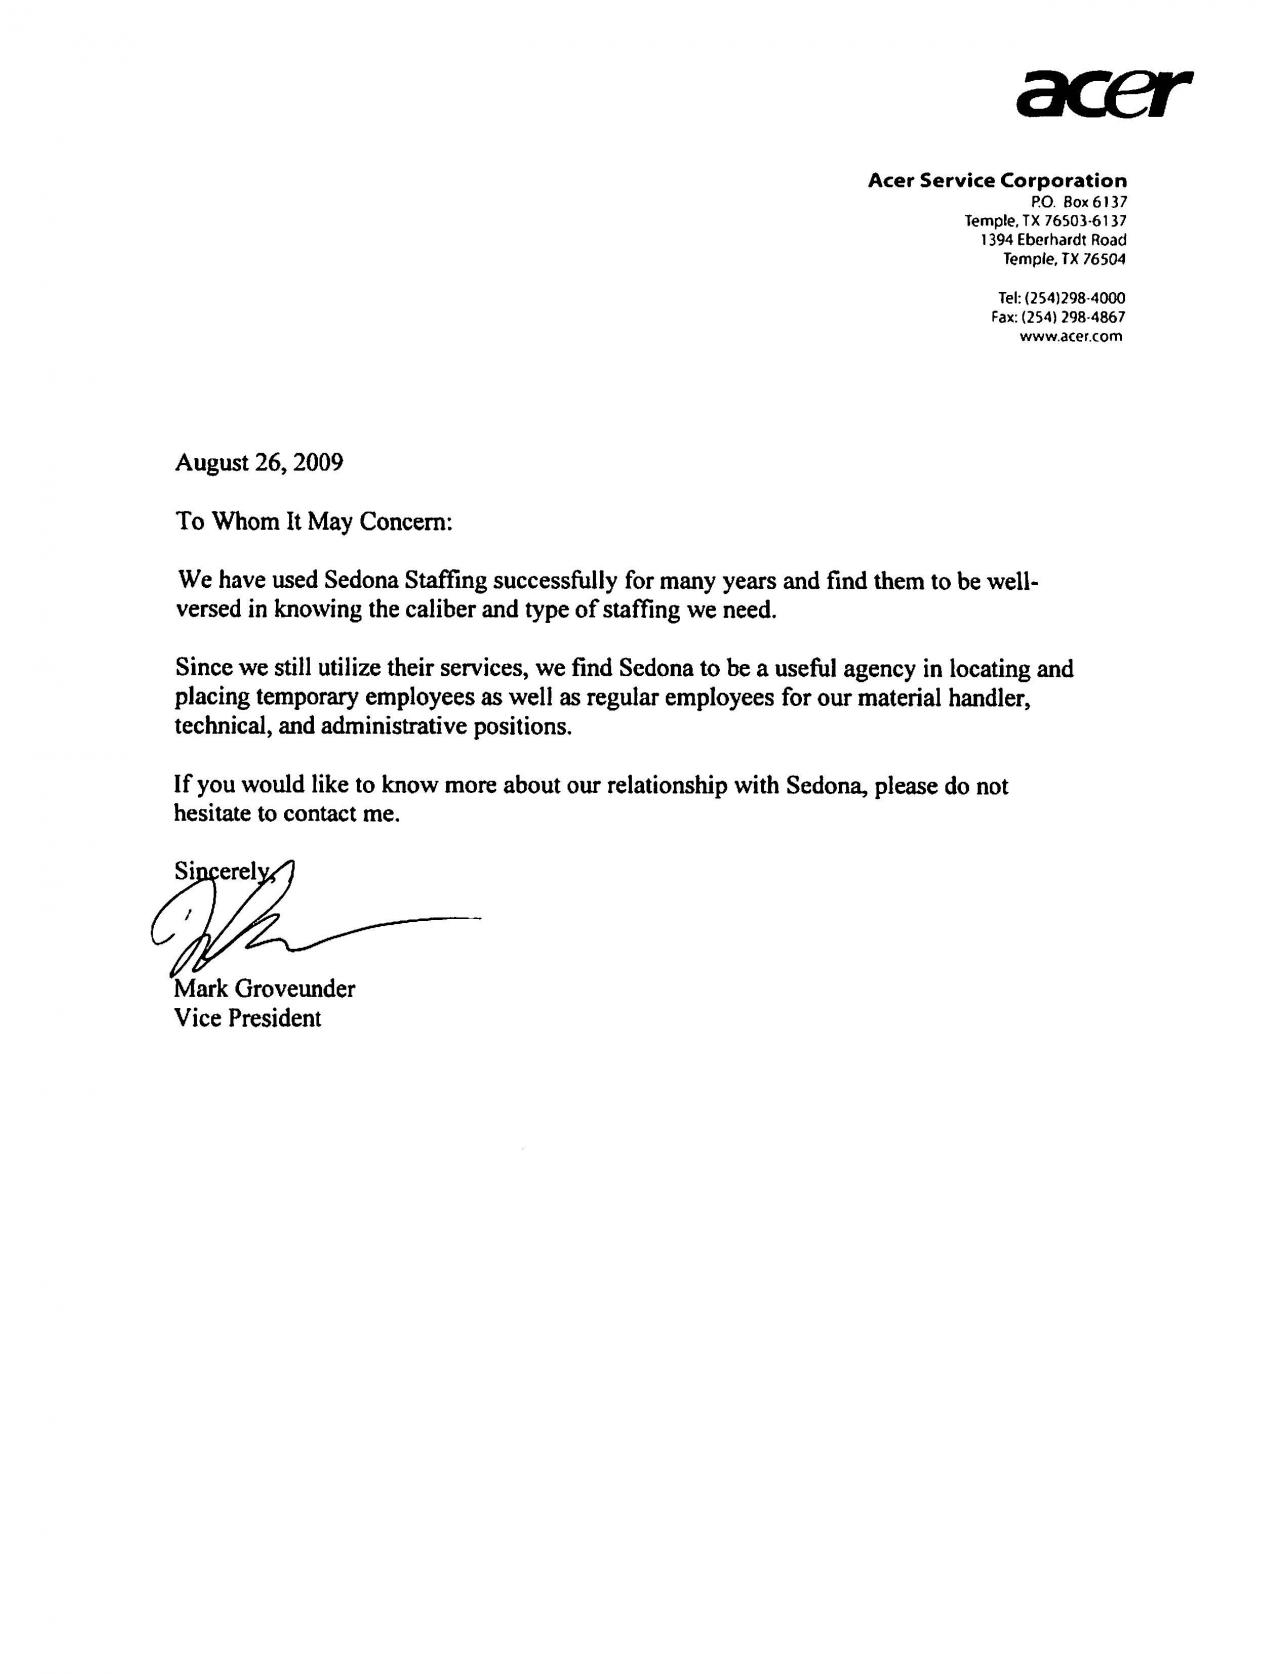 Customer Reference Letter Template - Customer Reference Letter Image Collections Letter format formal